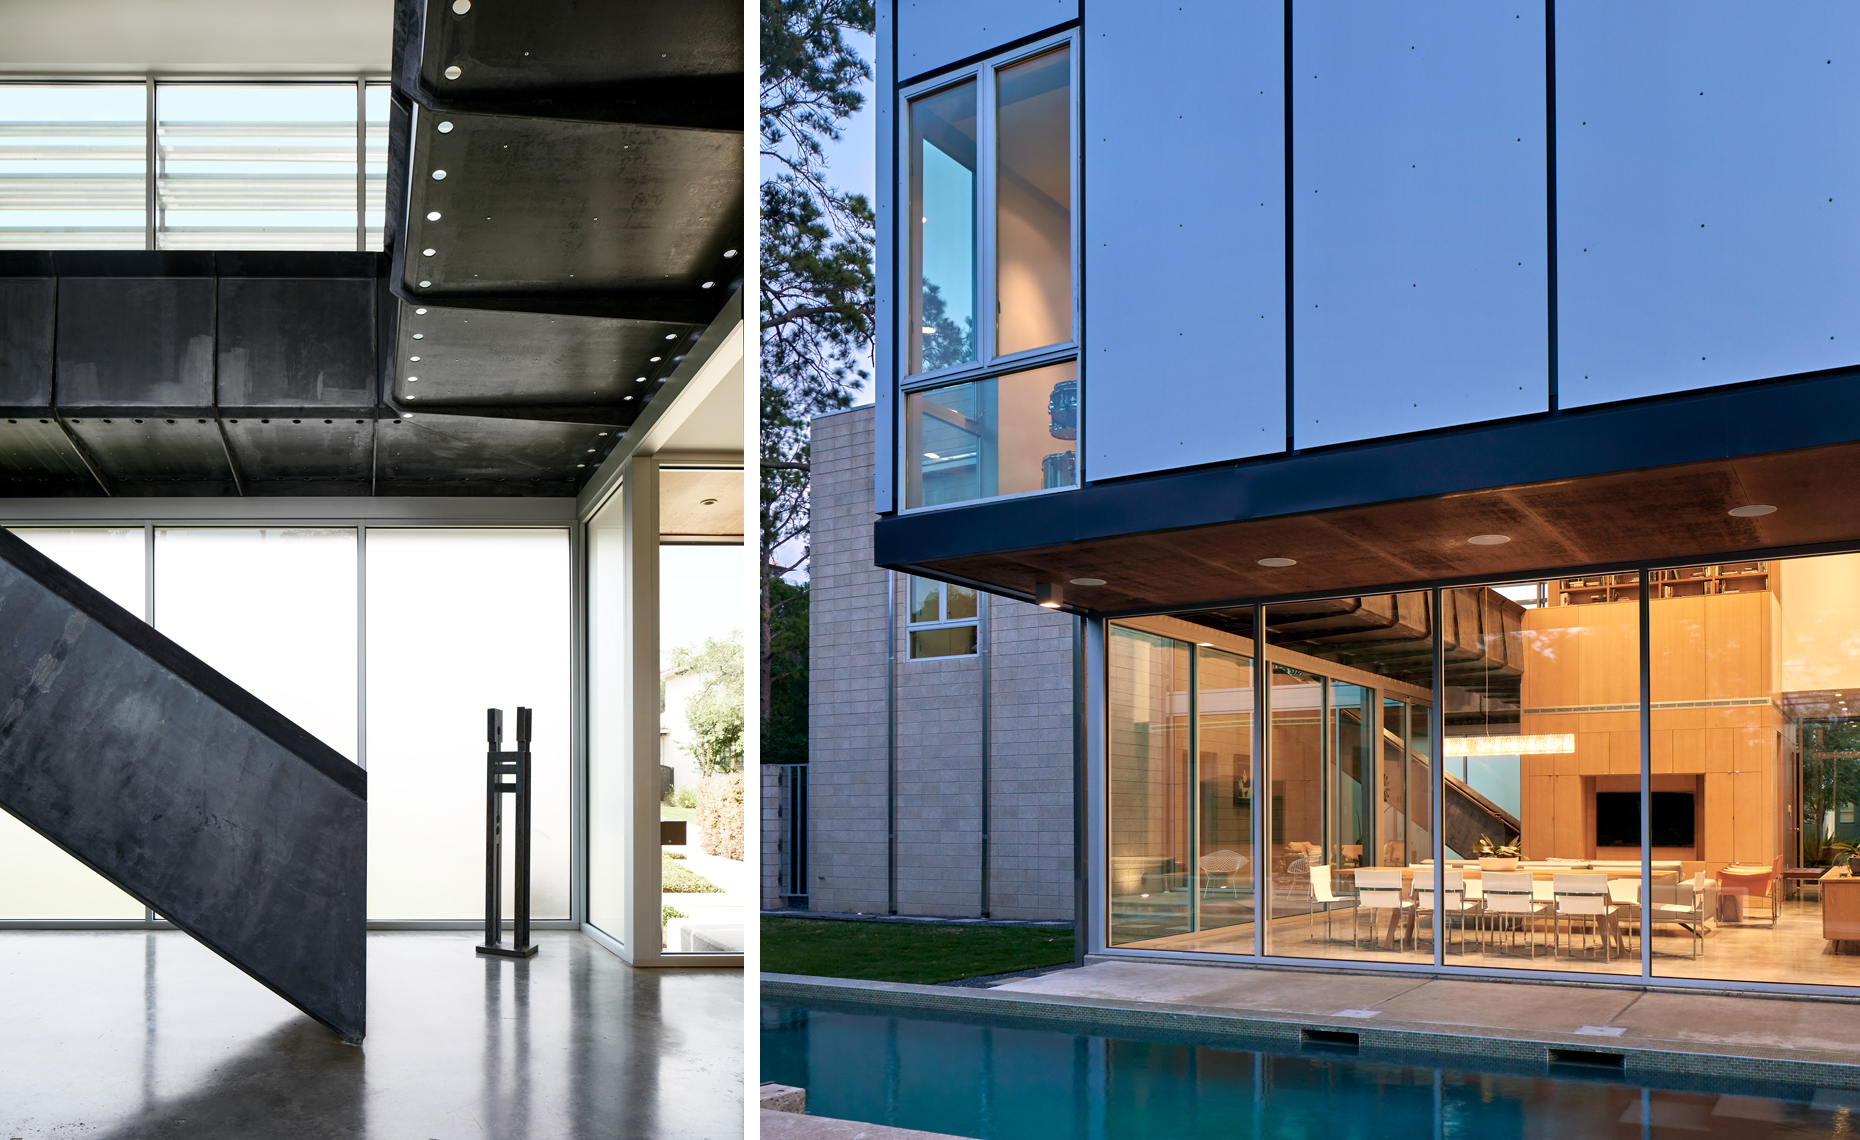 dror baldinger faia Architectural photography modern residence steel stairs metal panels  glass pool